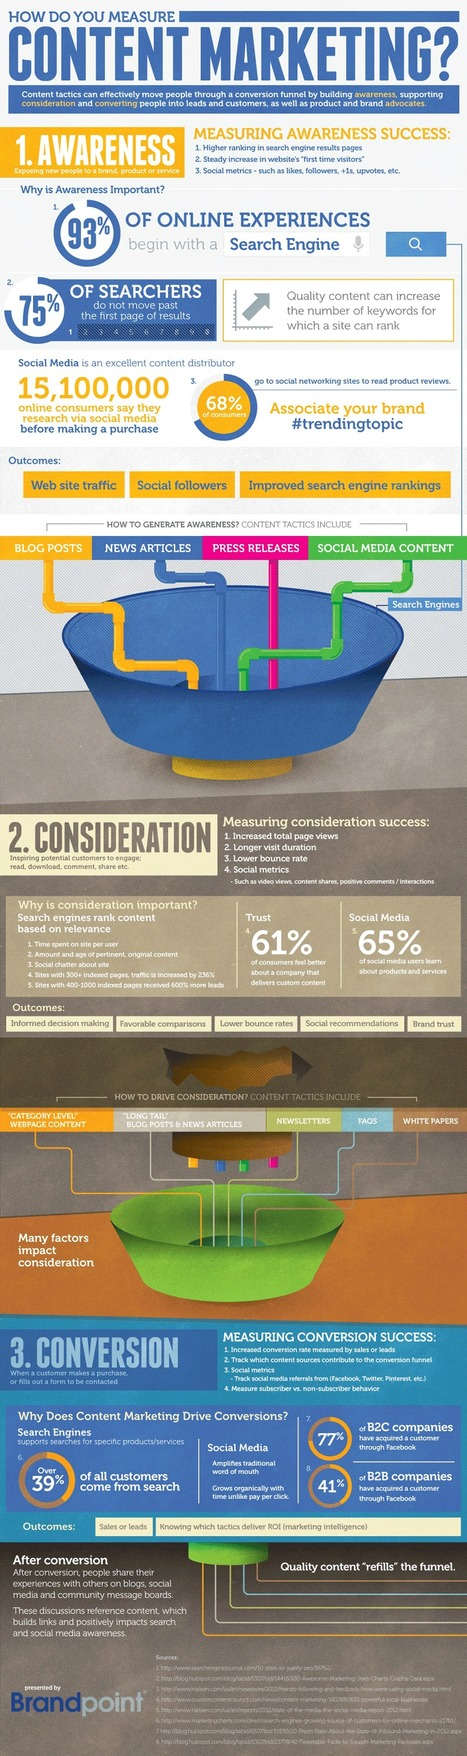 How to Measure Content Marketing Success | Infographic | Marketing Revolution | Scoop.it